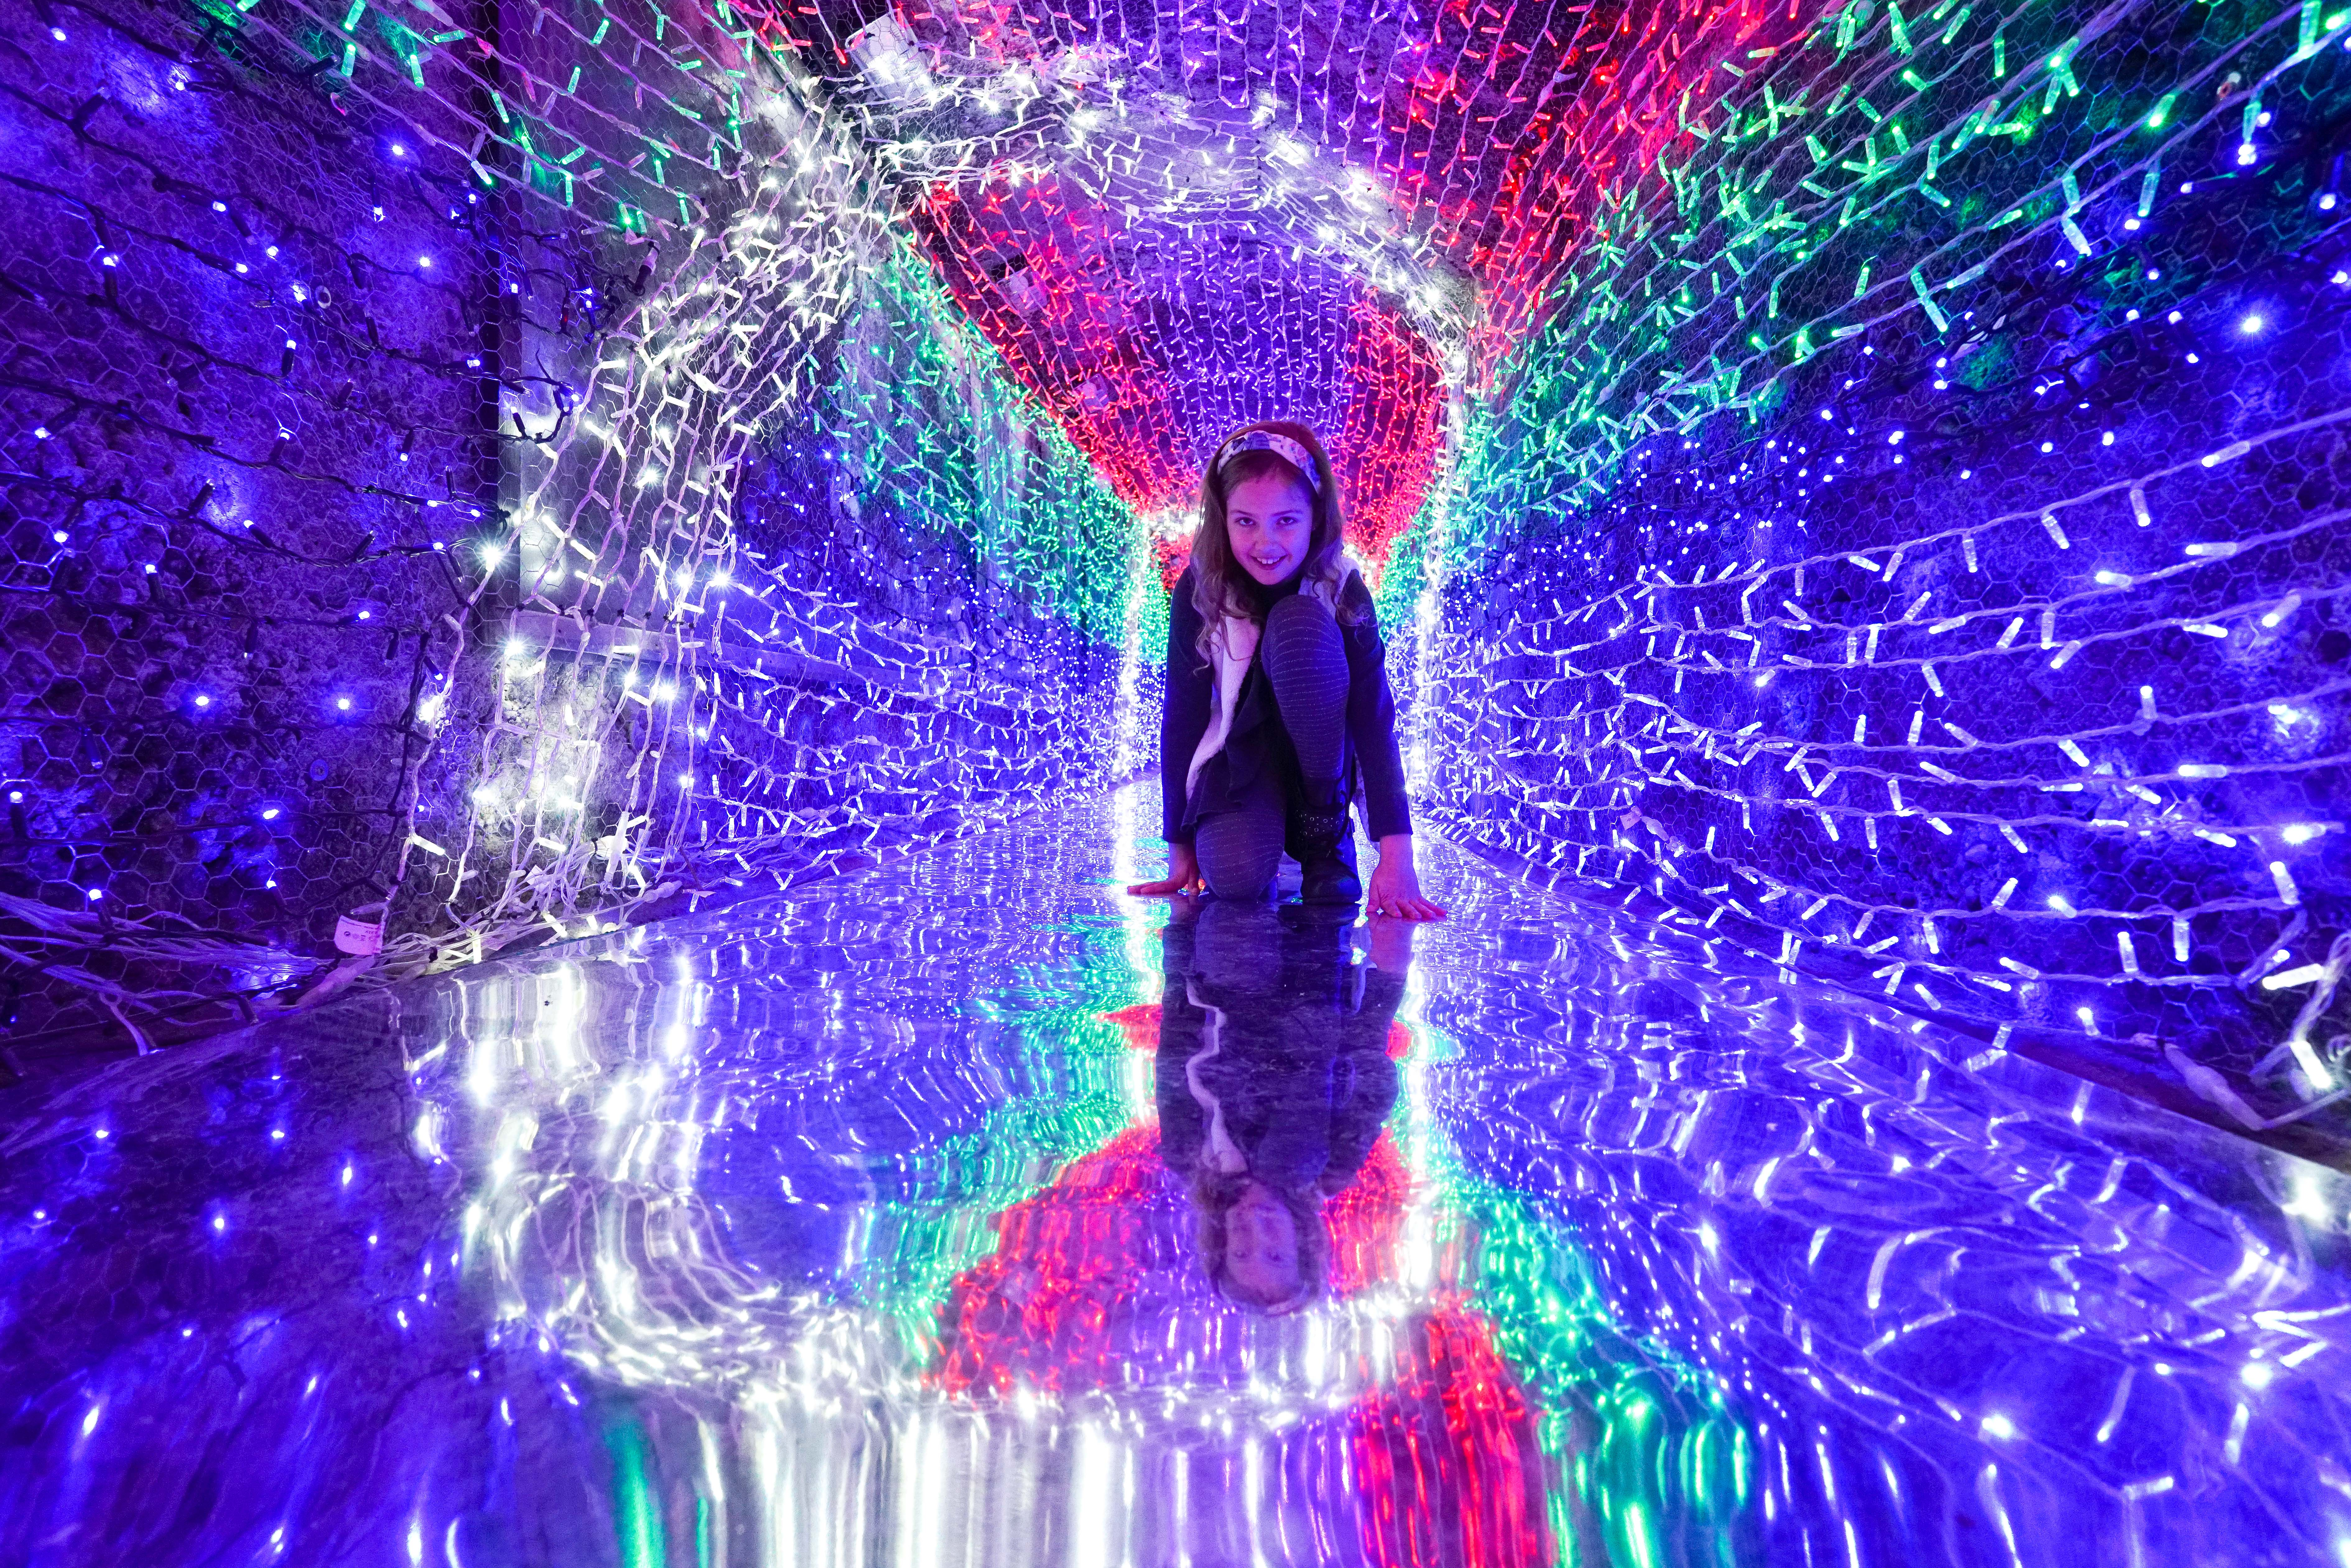 """CHARLESTOWN, ENGLAND - DECEMBER 03: Eight year-old Bellami Smit visits the festive Tunnel of Lights at the Shipwreck Treasure Museum on December 3, 2020 in Charlestown, England. The tunnel is Europe""""u2019s longest underground tunnel of festive lights. (Photo by Hugh Hastings/Getty Images)"""